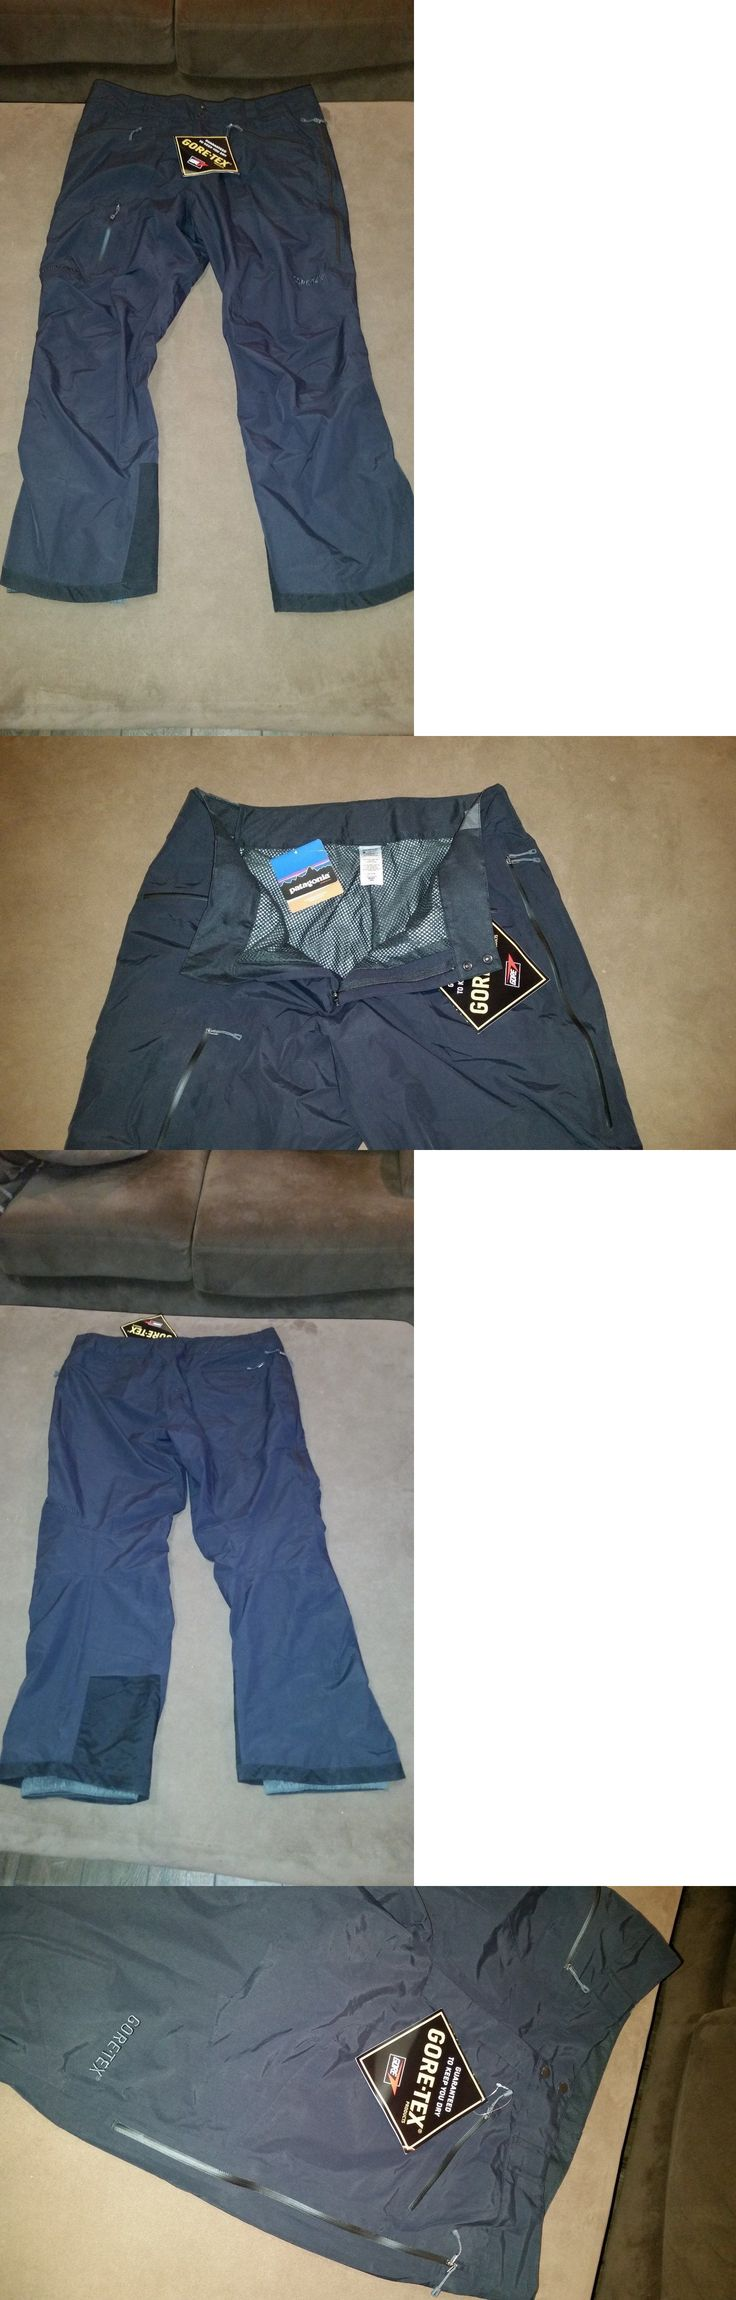 Snow Pants and Bibs 36261: Nwt Patagonia Mens 2 Layer Front Country Uniform Ski Snow Pants Black Sz Xxl -> BUY IT NOW ONLY: $90 on eBay!